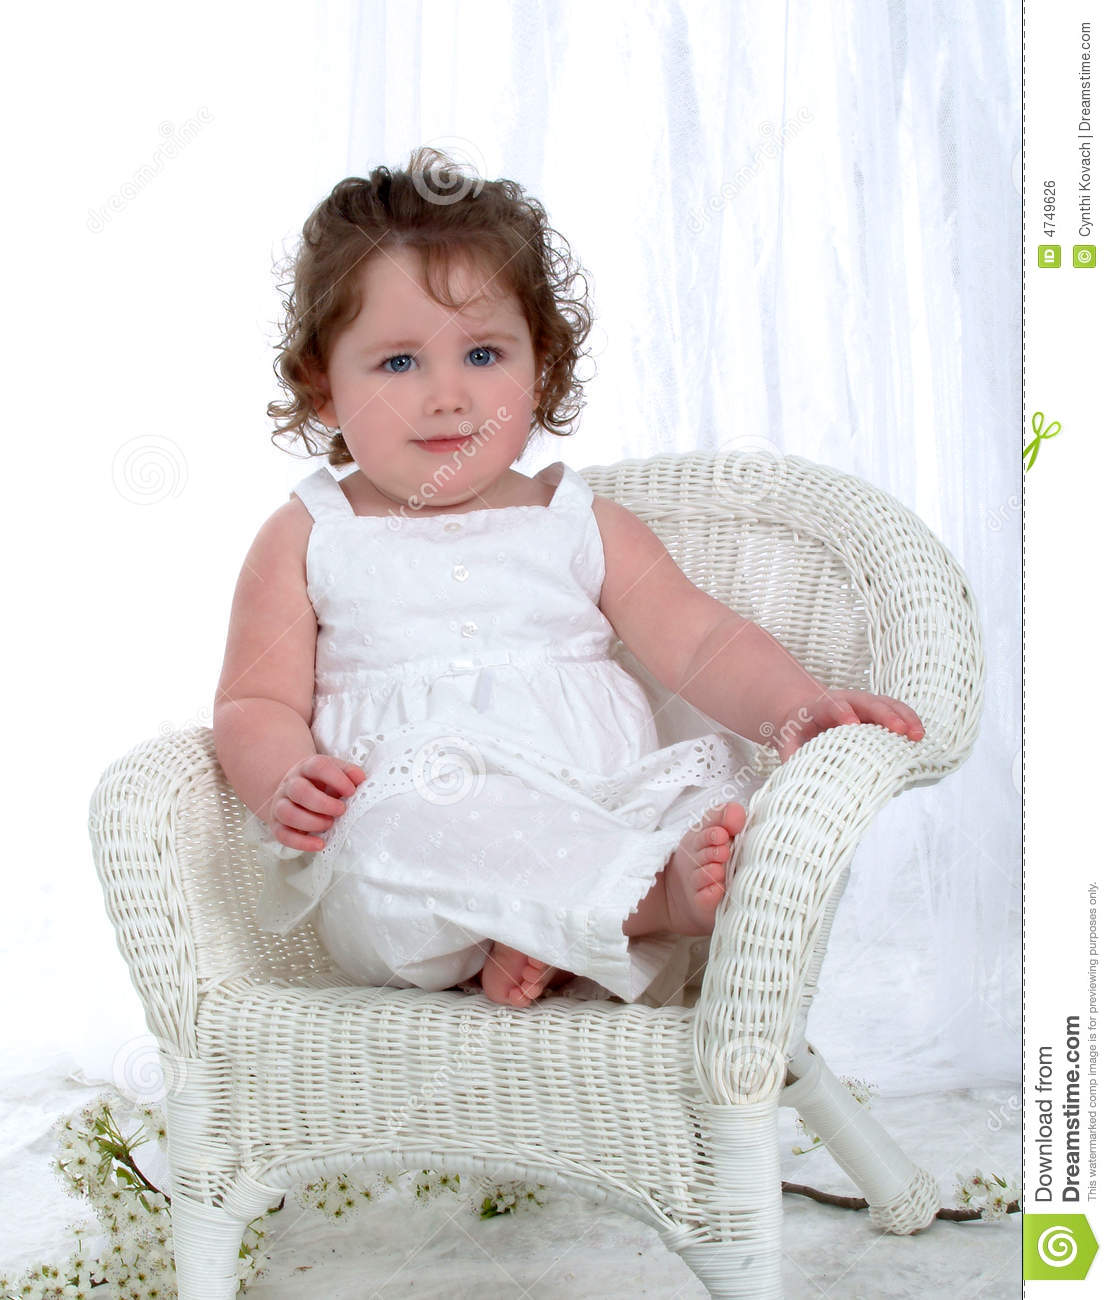 baby bamboo chair swivel replacement cushions girl on wicker royalty free stock image